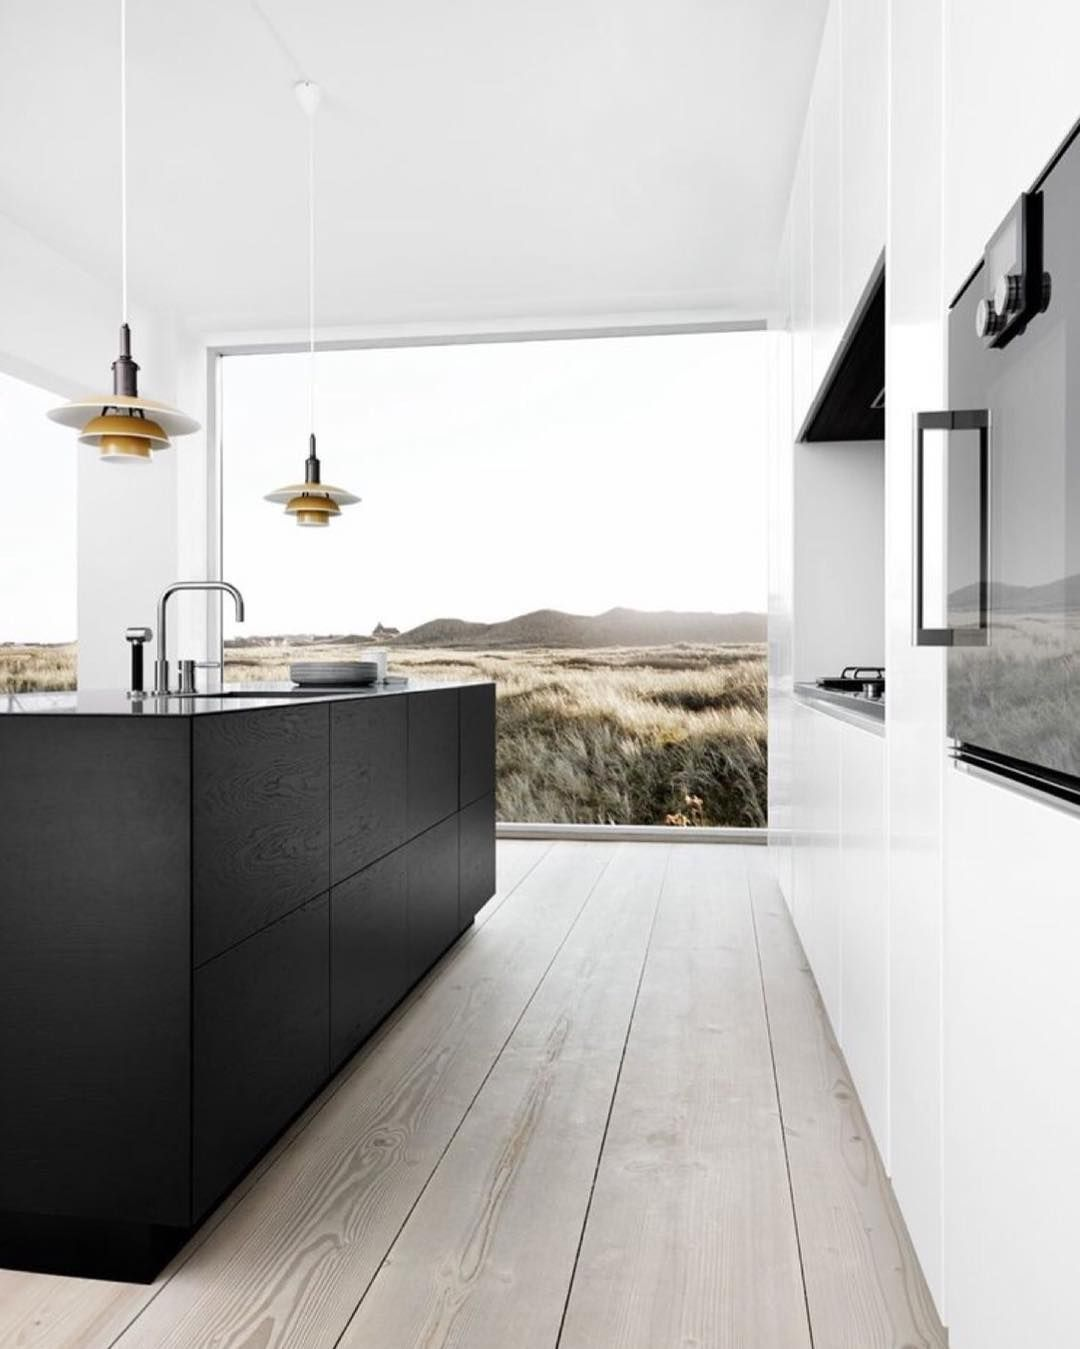 this kitchen and that view... follow our Pinterest page for more interior inspirations, link in our bio...⠀ #thebeachpeople #kitchen #interior #style #window #view